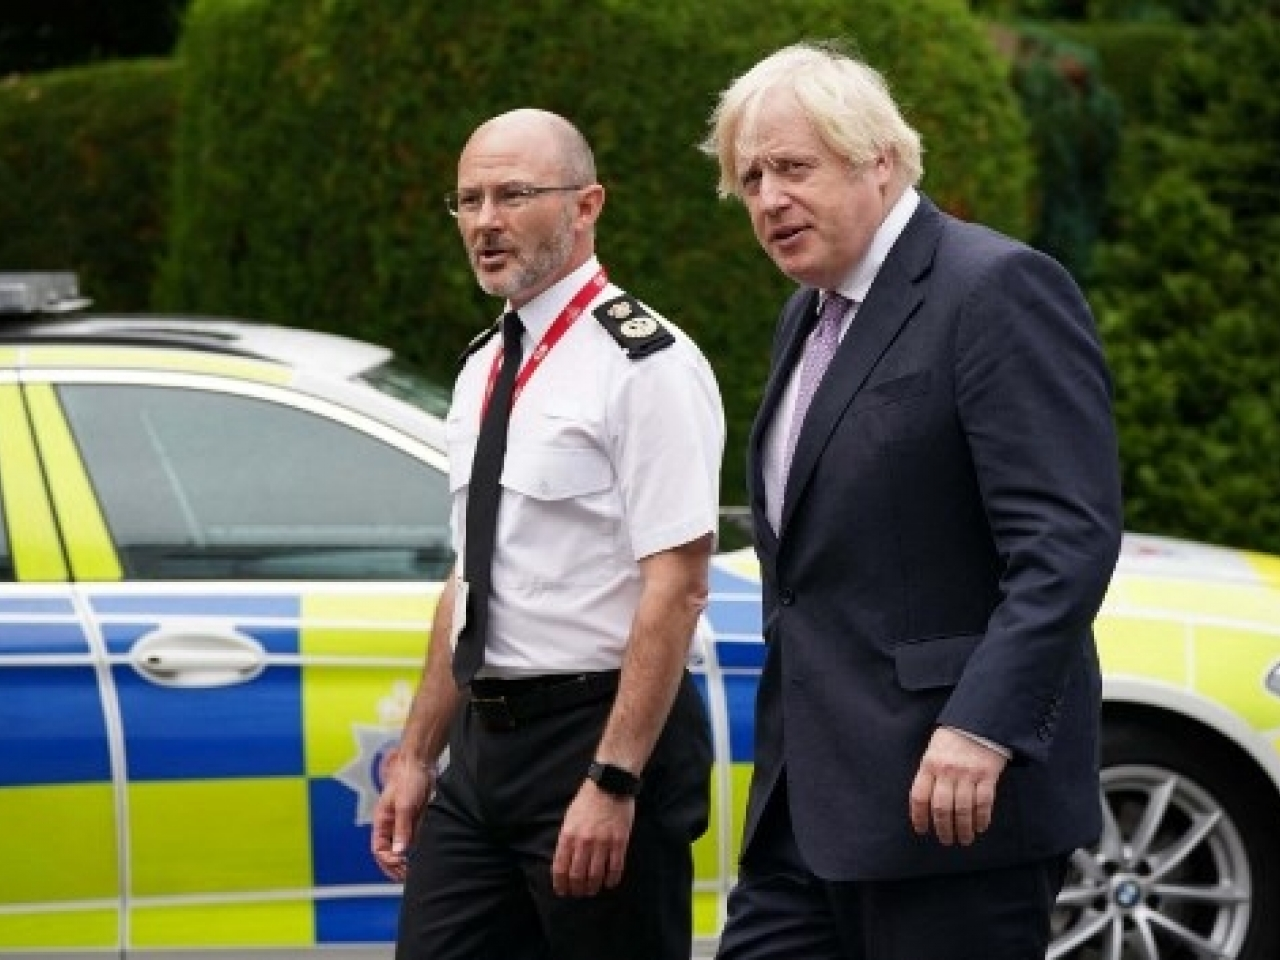 The UK prime minister (right) said people have got to remain cautious and that remained the approach of the government. Photo: AFP